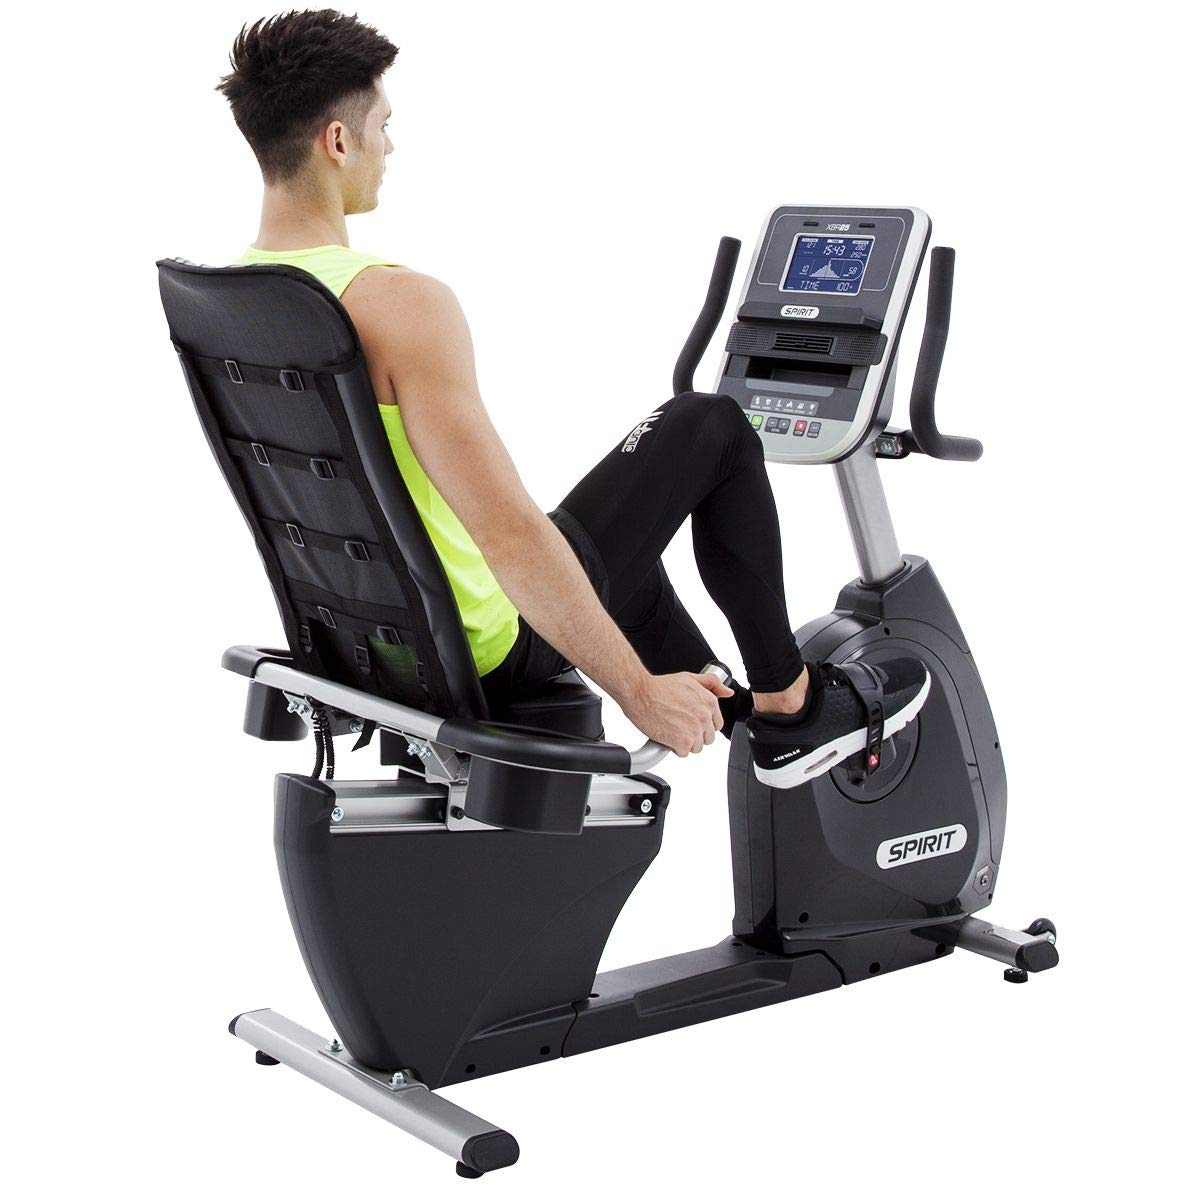 Spirit Fitness XBR25 Recumbent Bike